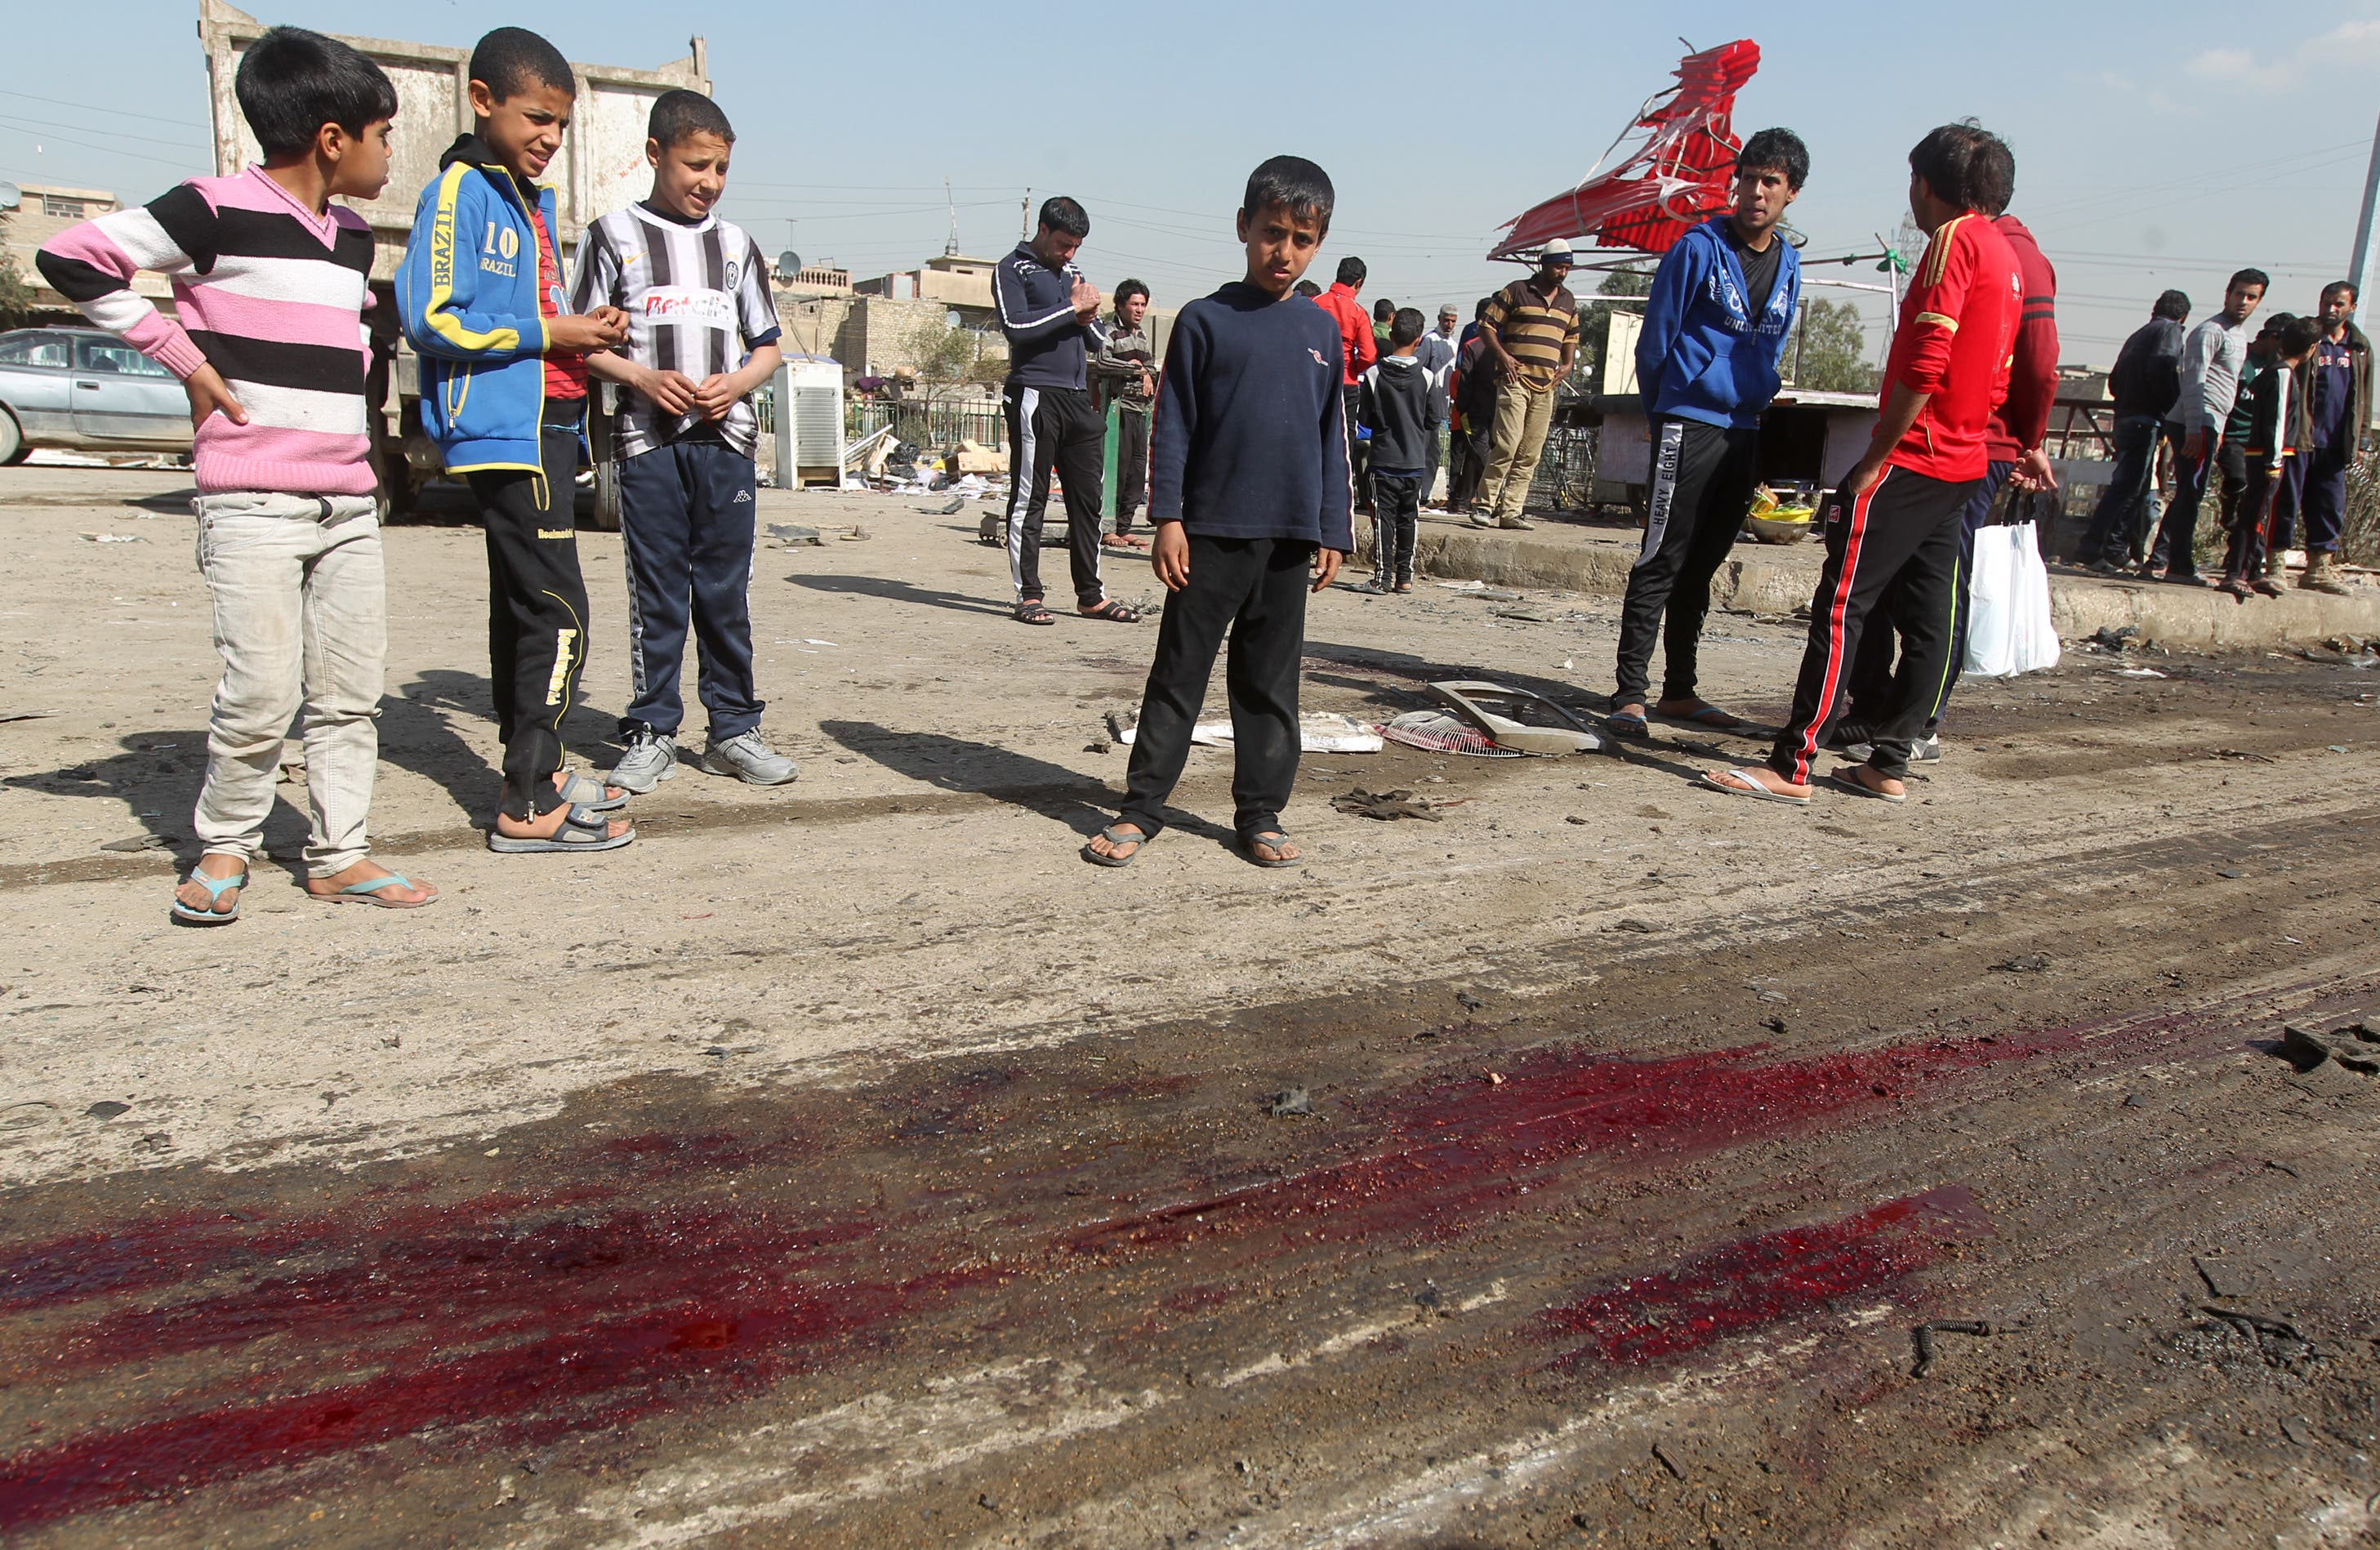 Iraqi children gather around blood stains at the site of a car bomb attack in Baghdad's impoverished district of Sadr City on Sunday. A series of bombings mainly targeting Shiite areas of Baghdad killed at least 21 people, officials said, in the latest violence to hit Iraq as it struggles with protests and a political crisis. (AFP Photo/Ahmad al-Rubaye)